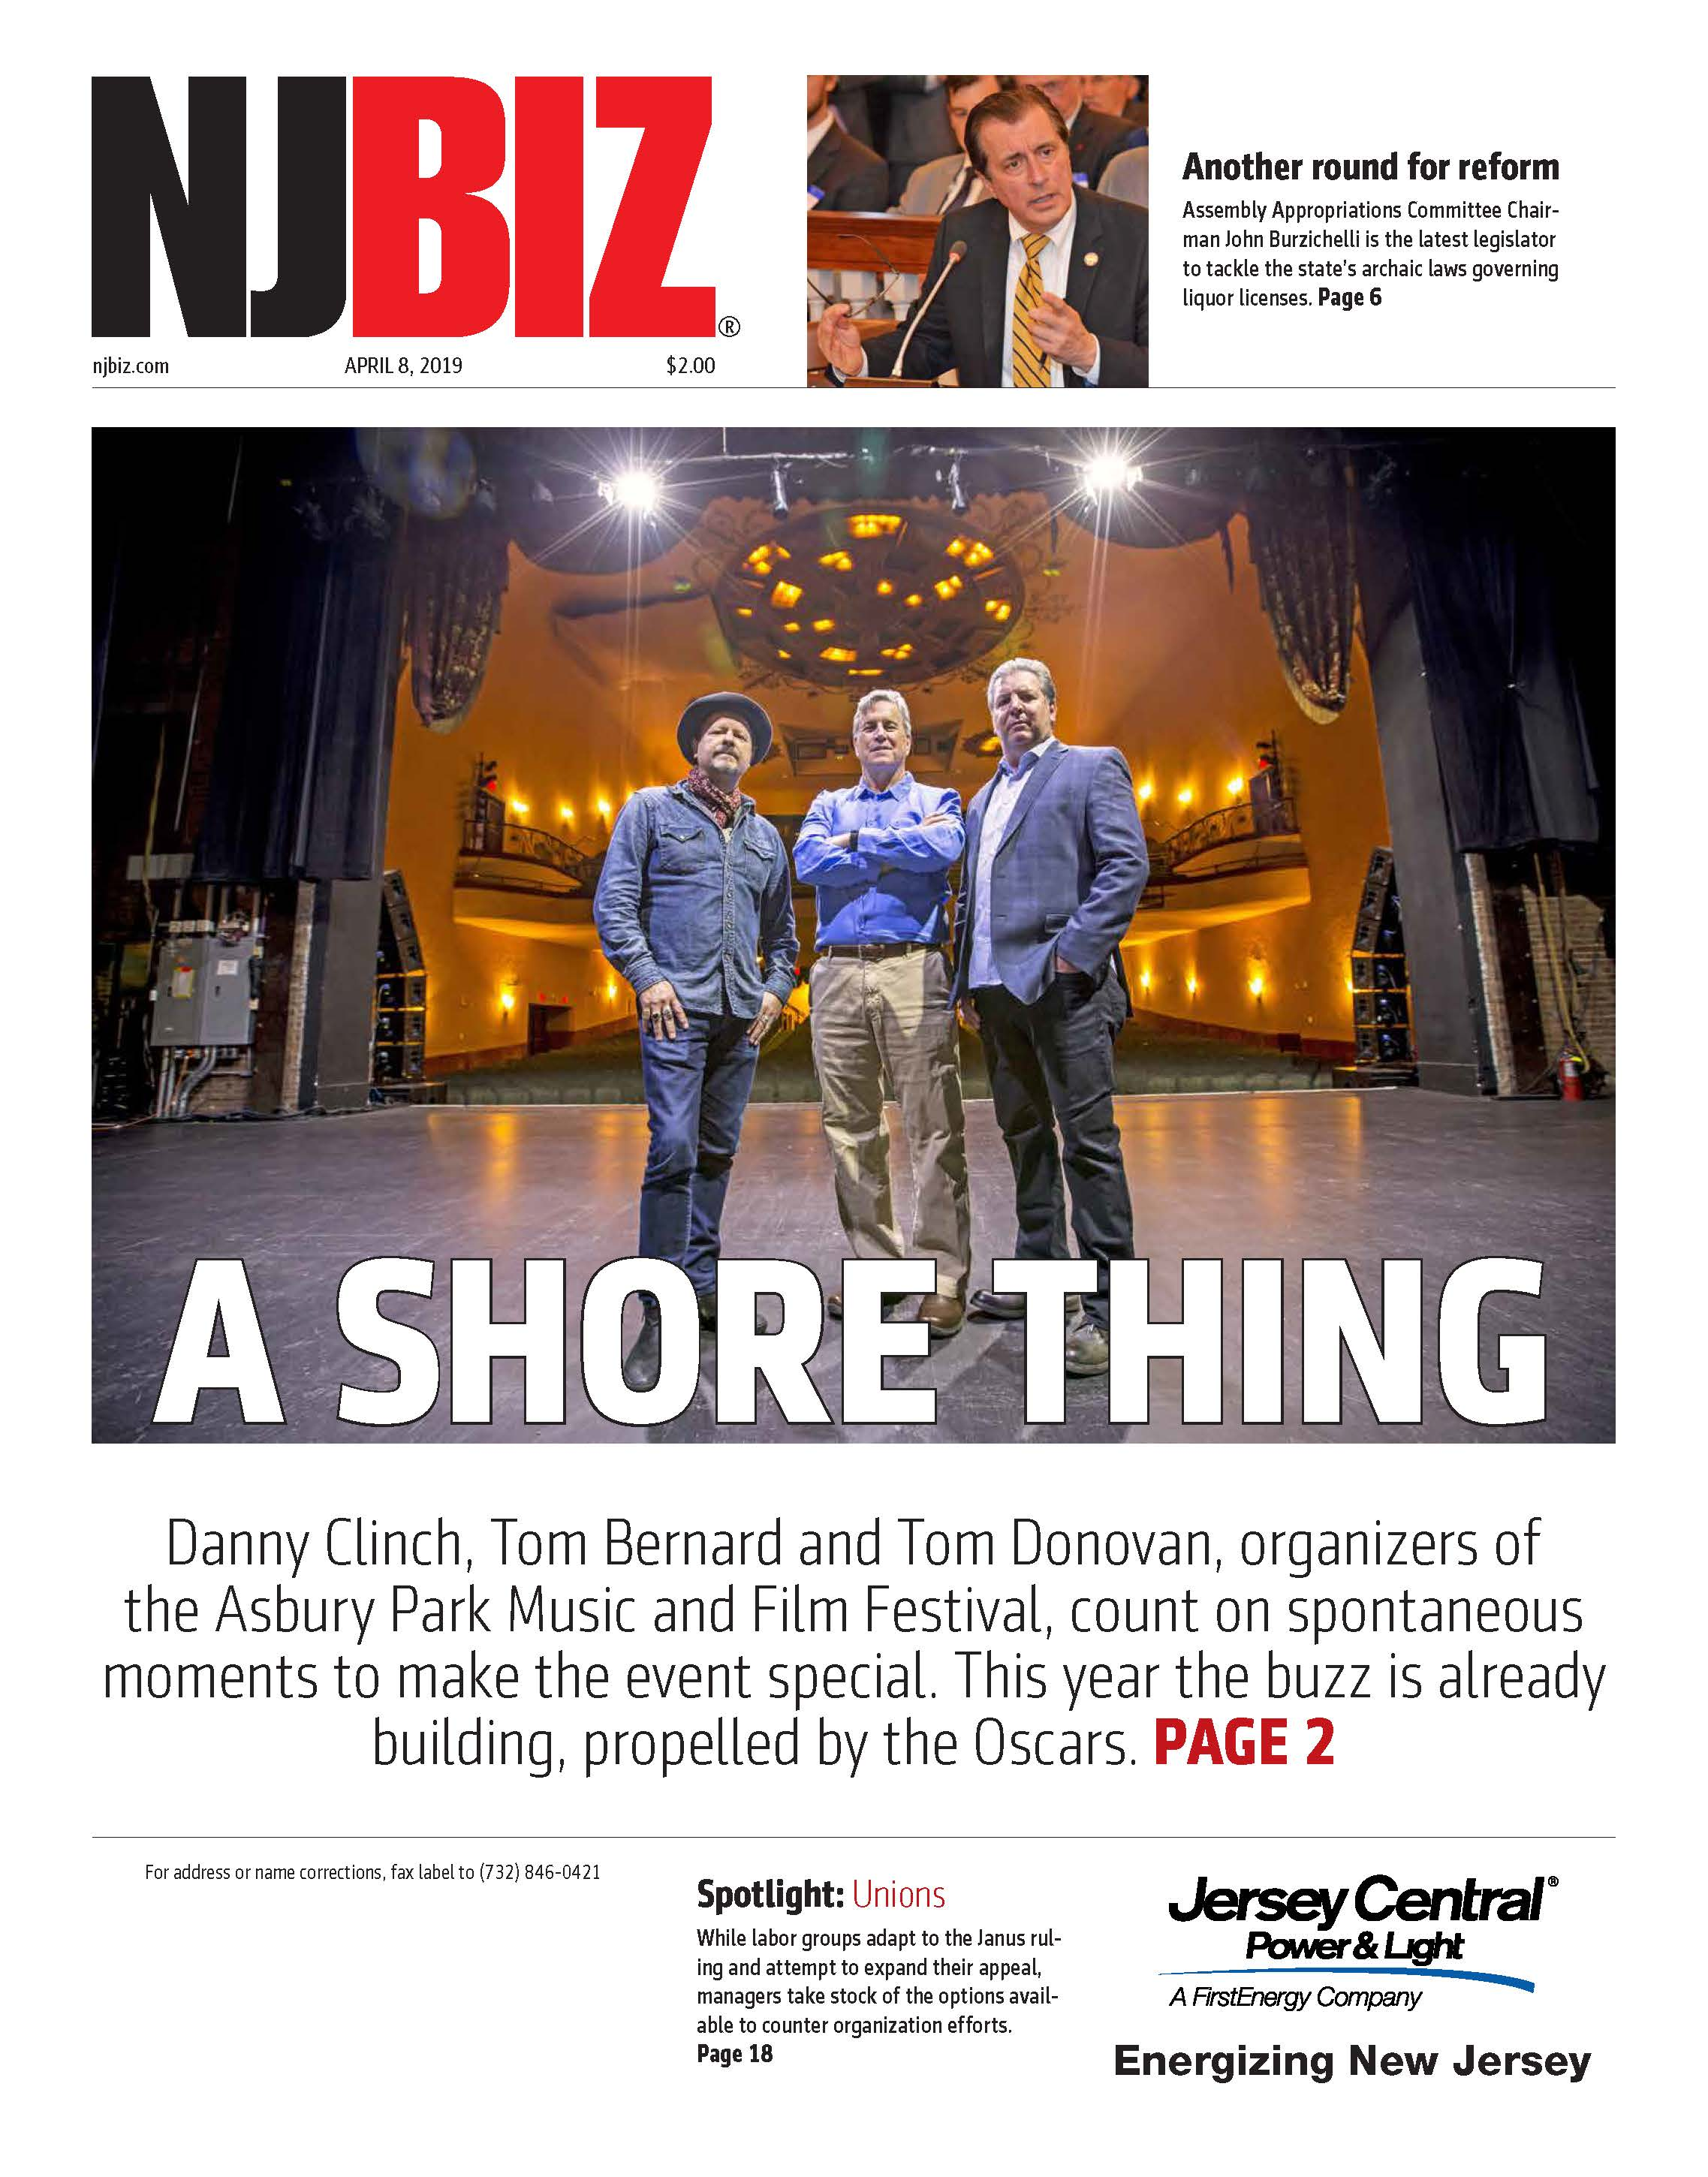 April 8, 2019 Edition of NJBIZ